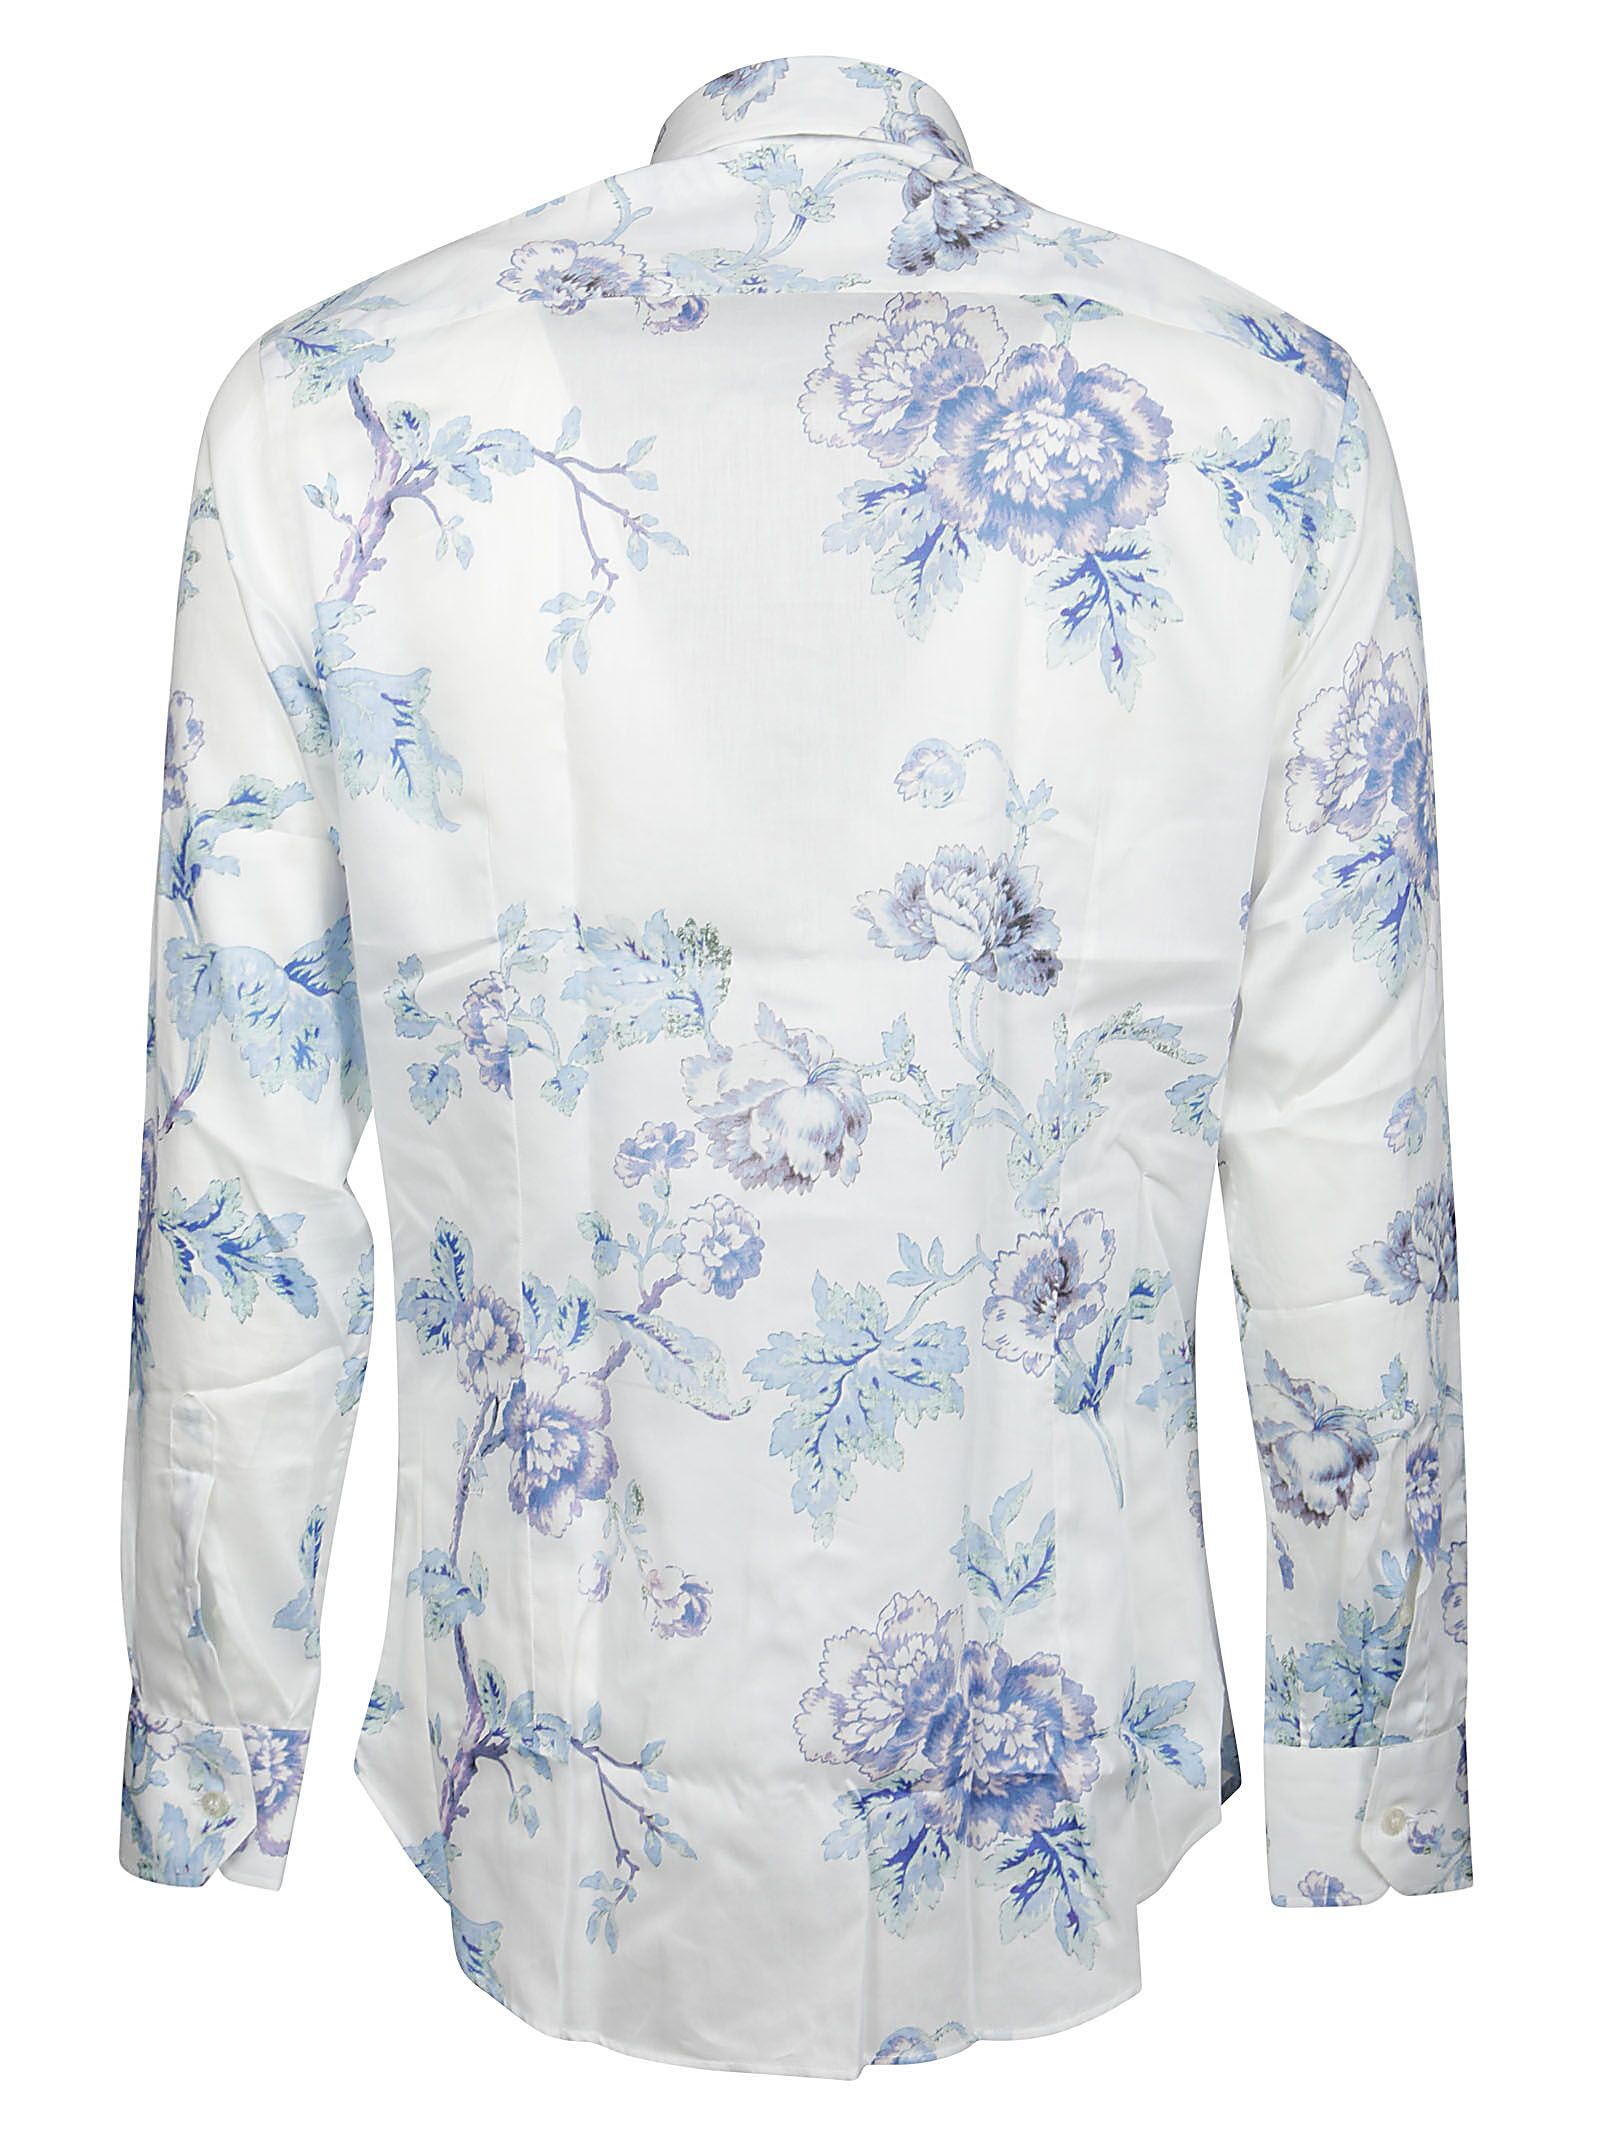 ETRO Cottons ETRO MEN'S WHITE OTHER MATERIALS SHIRT